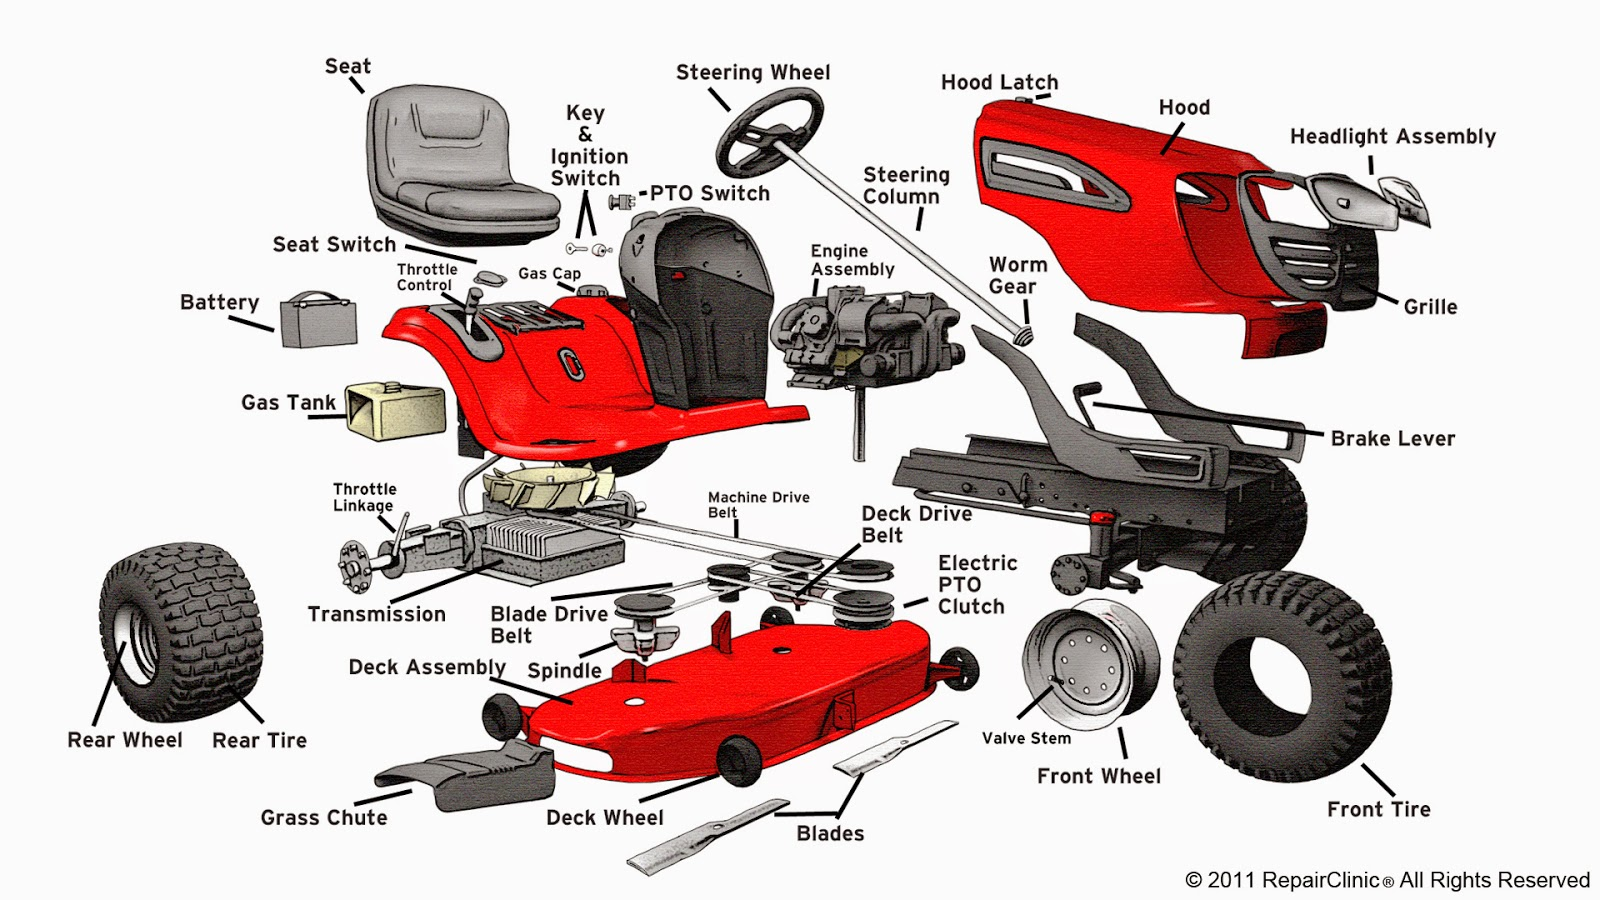 4190 moreover Kubota M7040 Parts Diagram additionally Starting furthermore Wiring Diagram Bolen Riding Mower 685219 also Simple Tractor Wiring Diagram. on kubota tractor wiring diagram